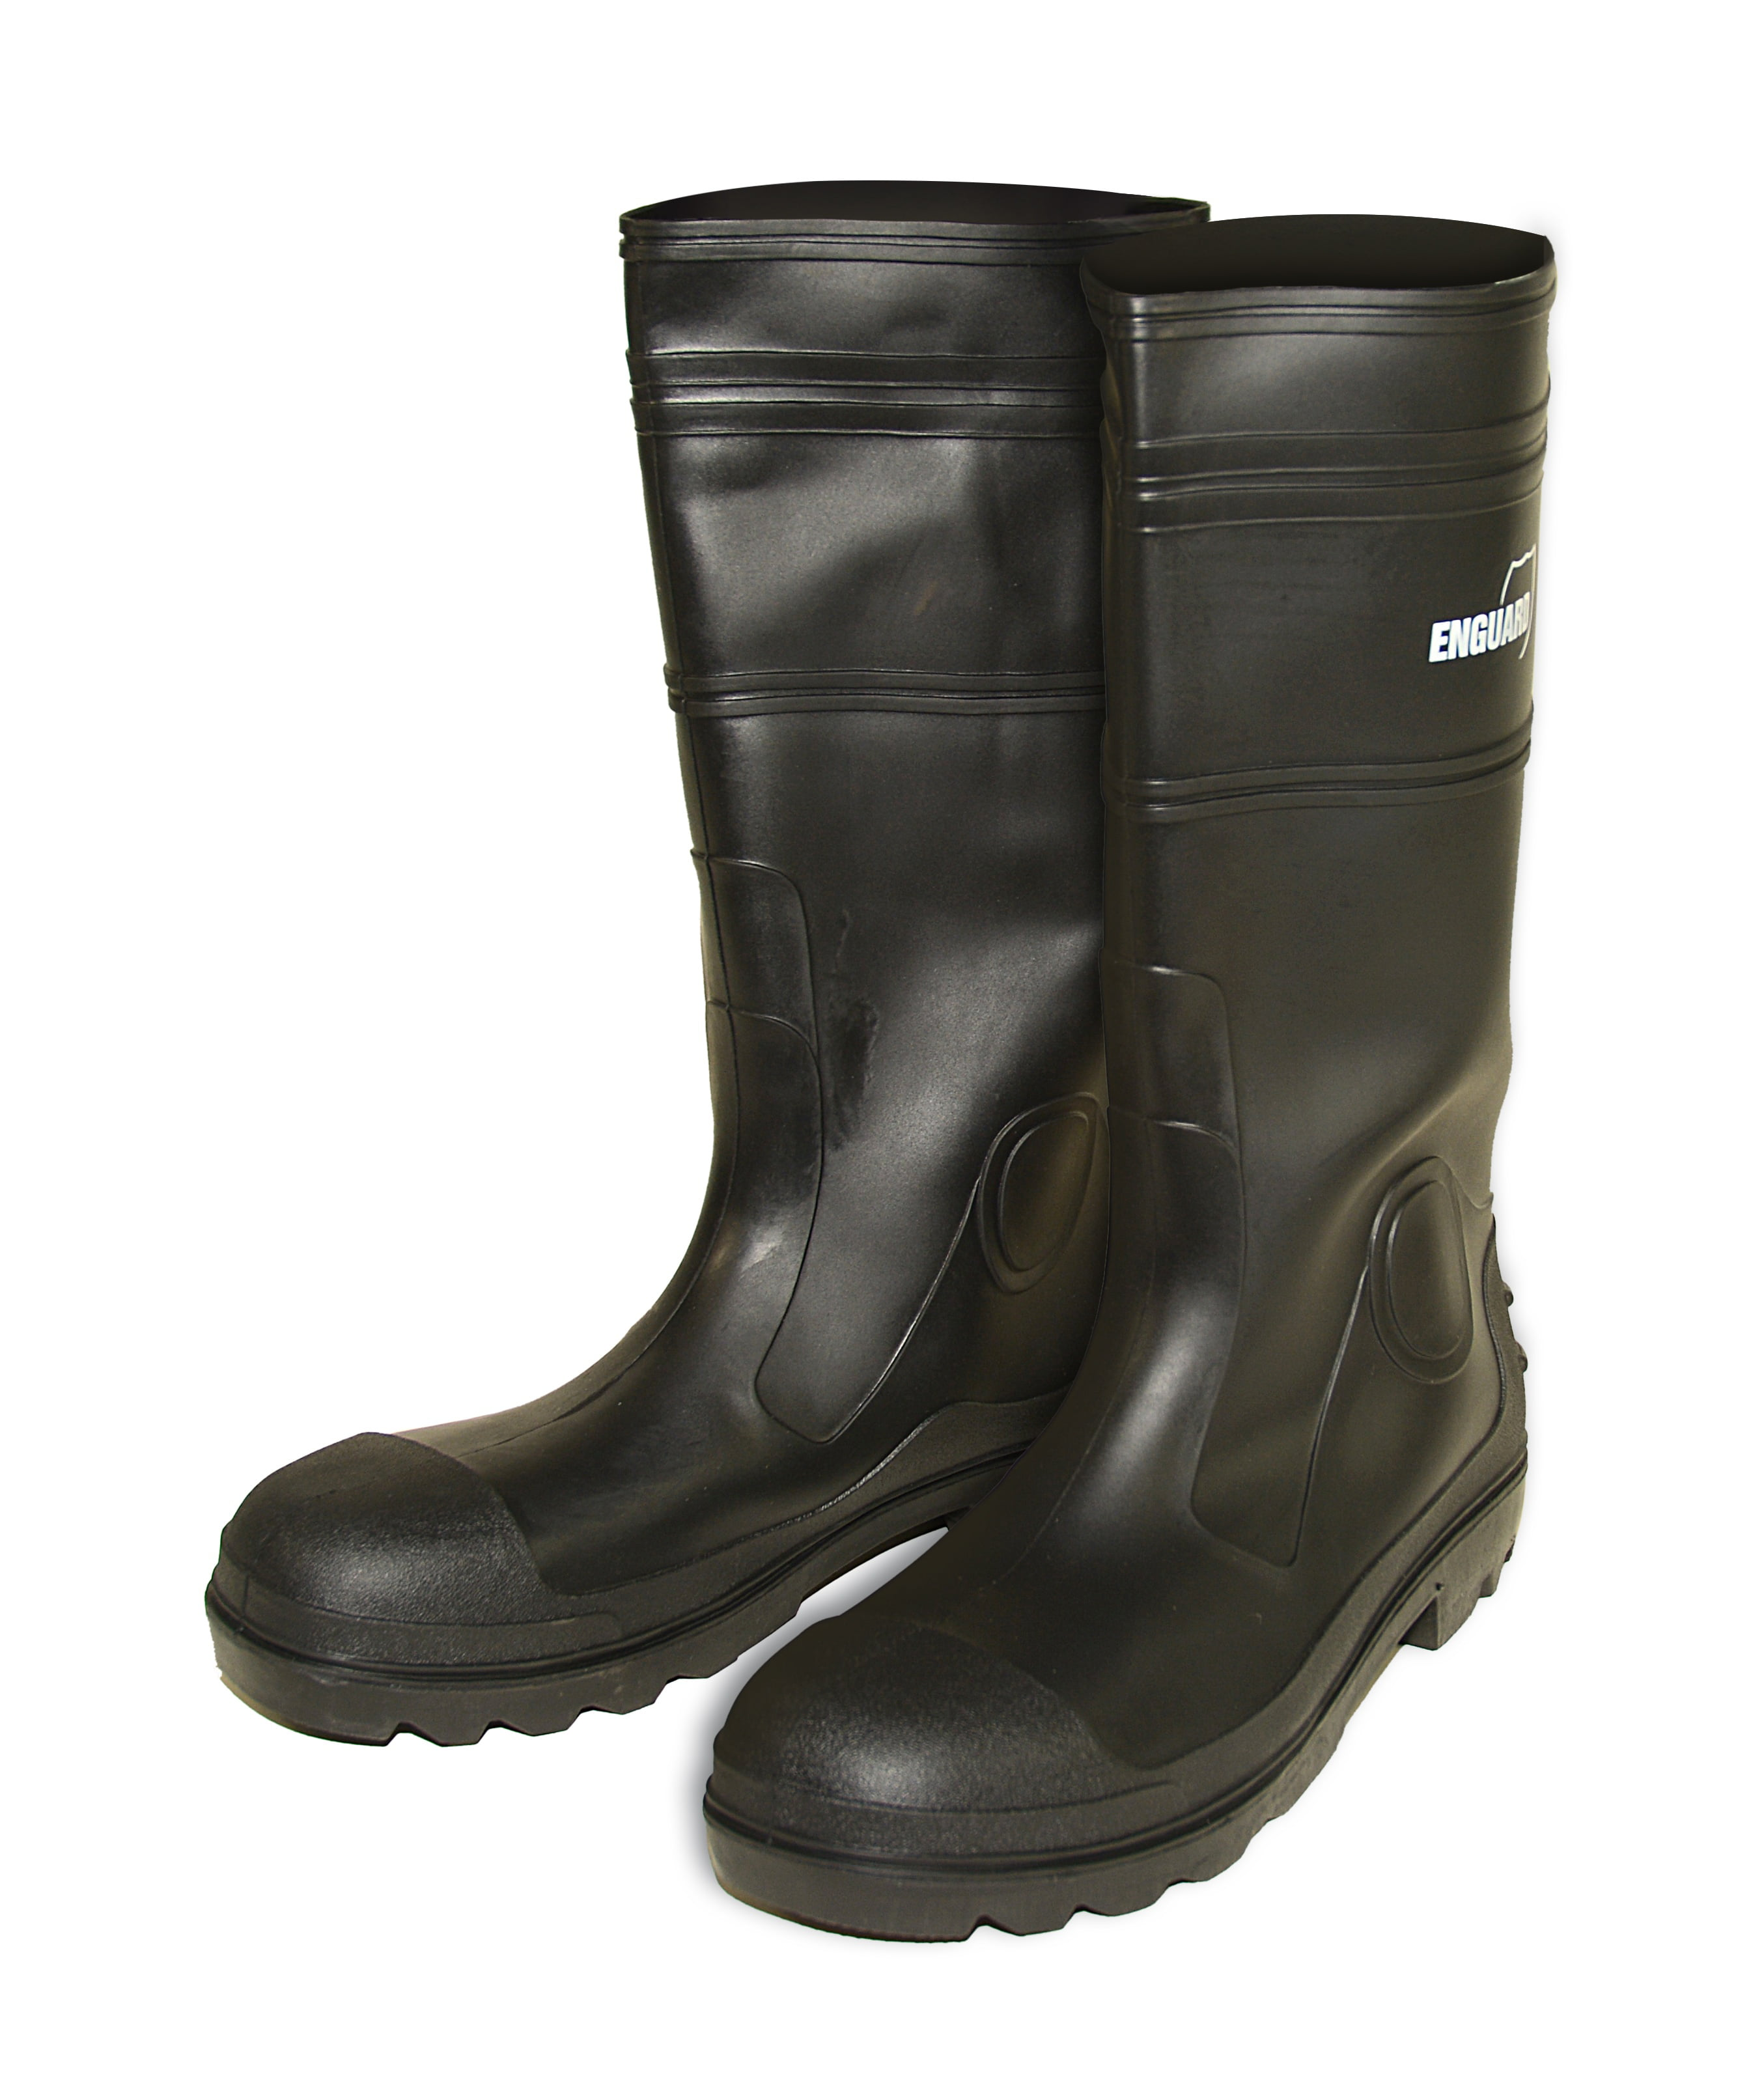 "Enguard Men's Waterproof 16"" PVC Boots by Supplier Generic"